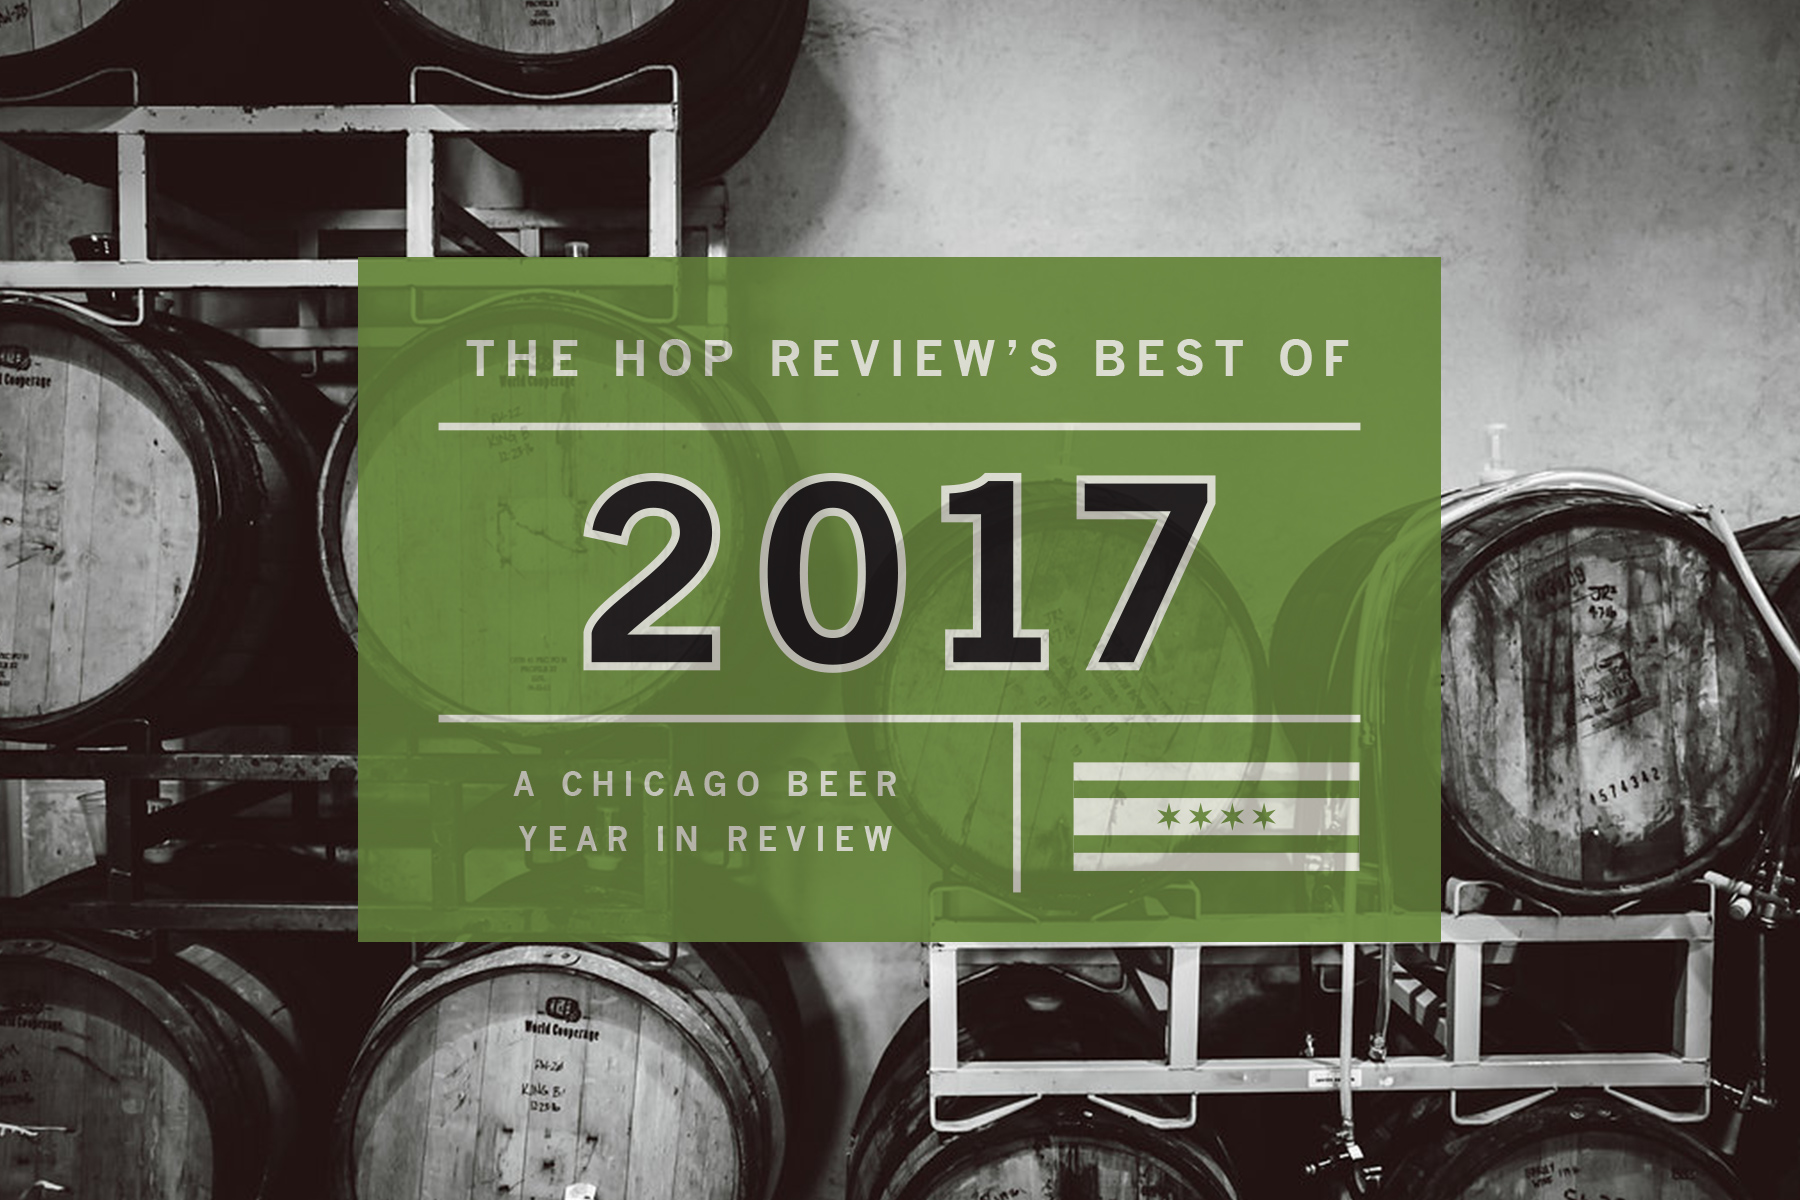 The Hop Review's Best of Chicago 2017